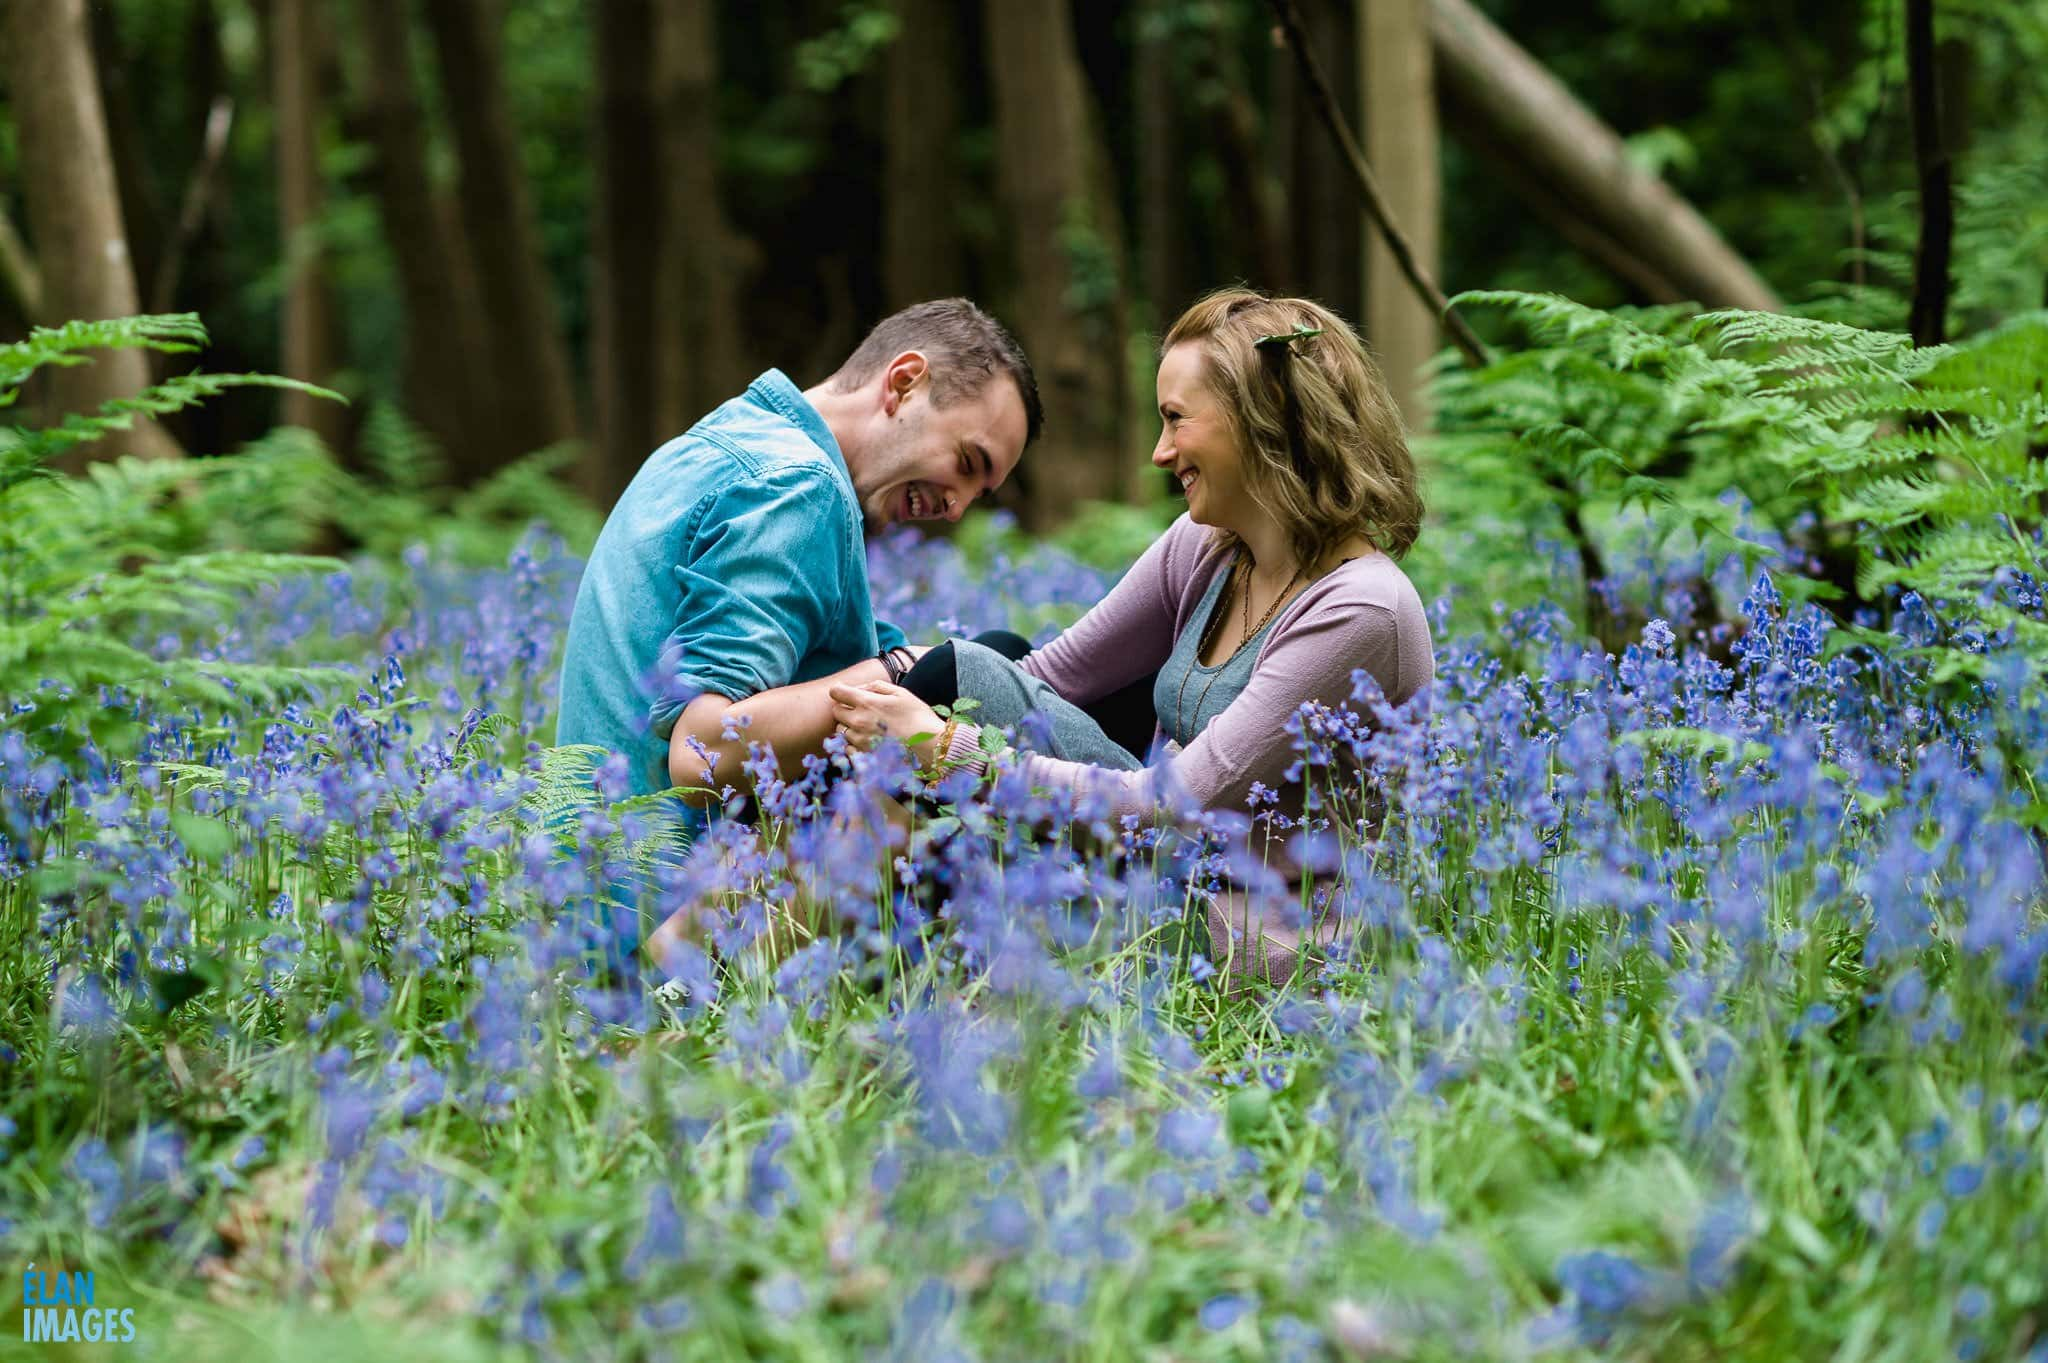 Engagement Photo Shoot in the Bluebell Woods near Bristol 12